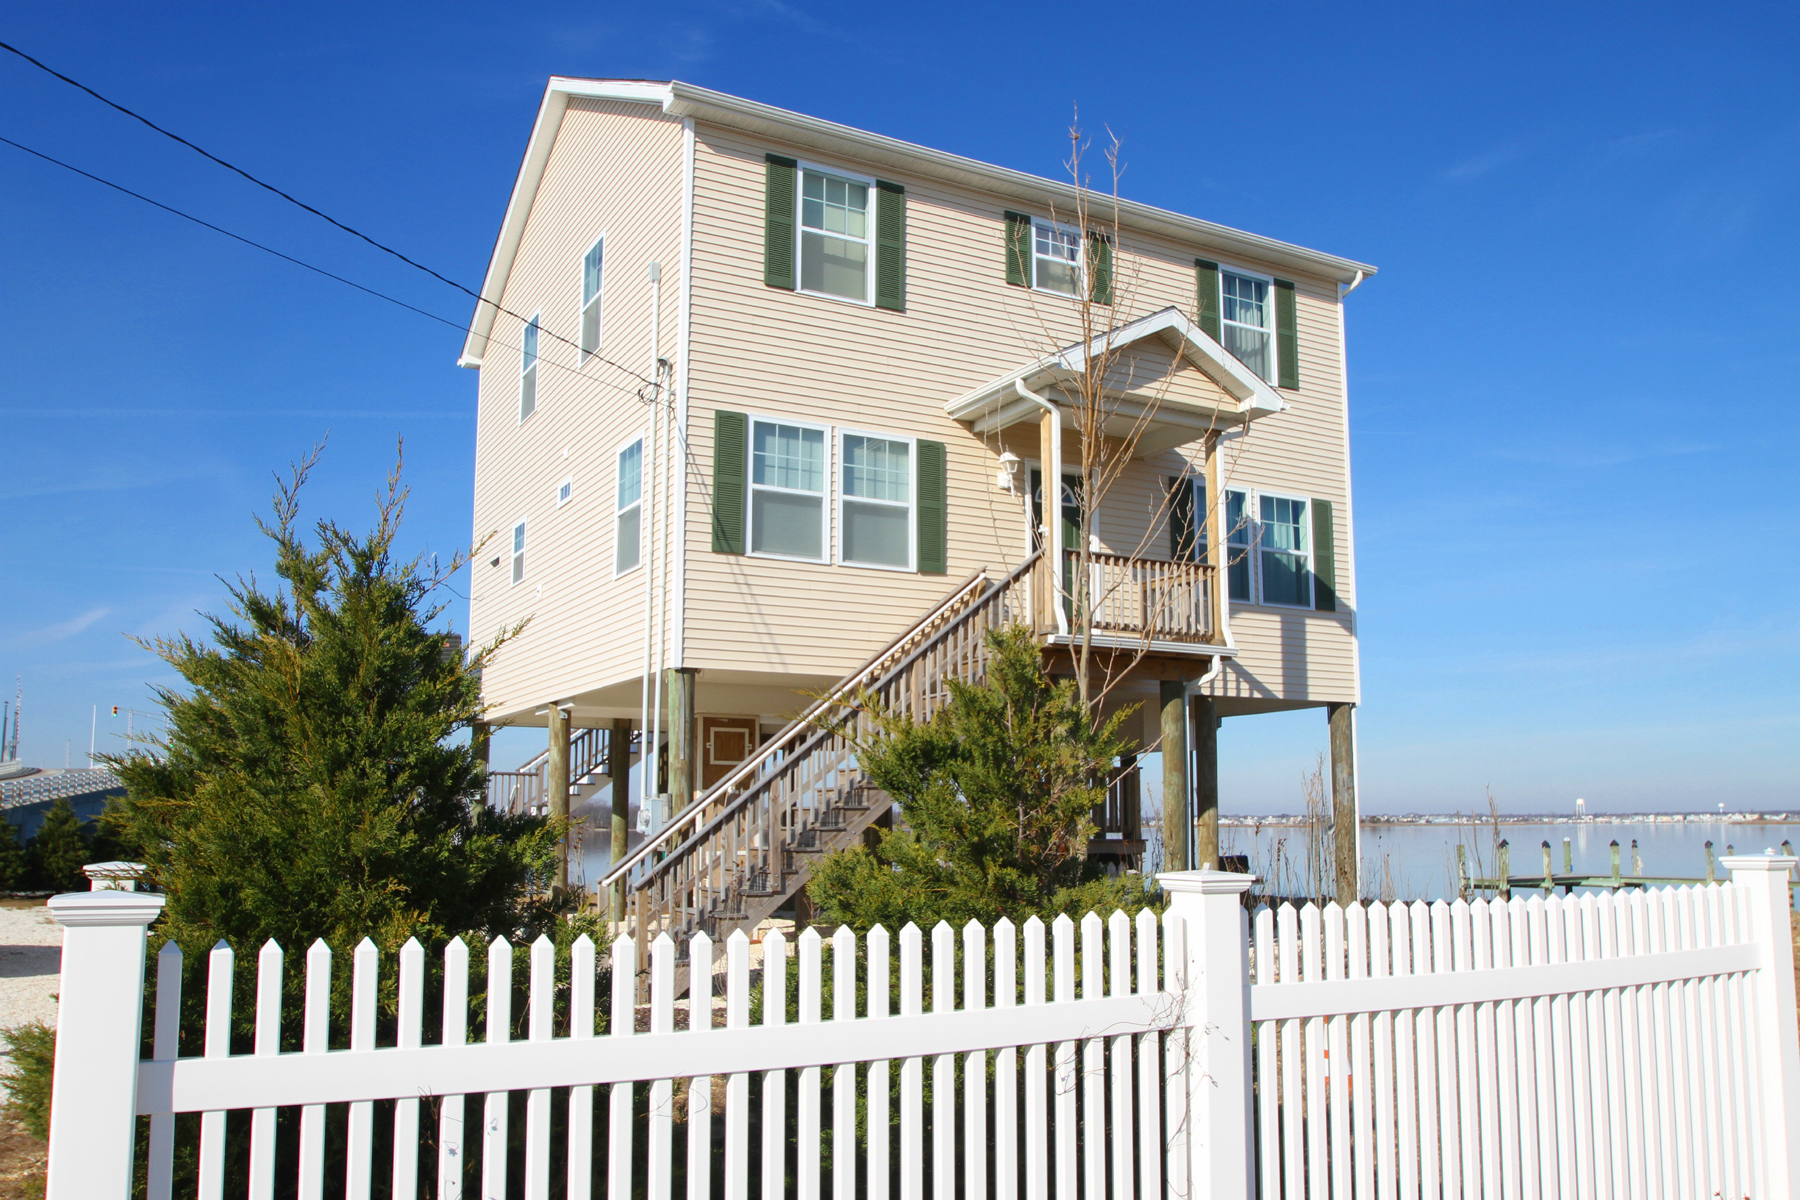 Single Family Home for Sale at Mantoloking Borough Bayfront 1198 Bay Avenue Mantoloking, New Jersey 08738 United States